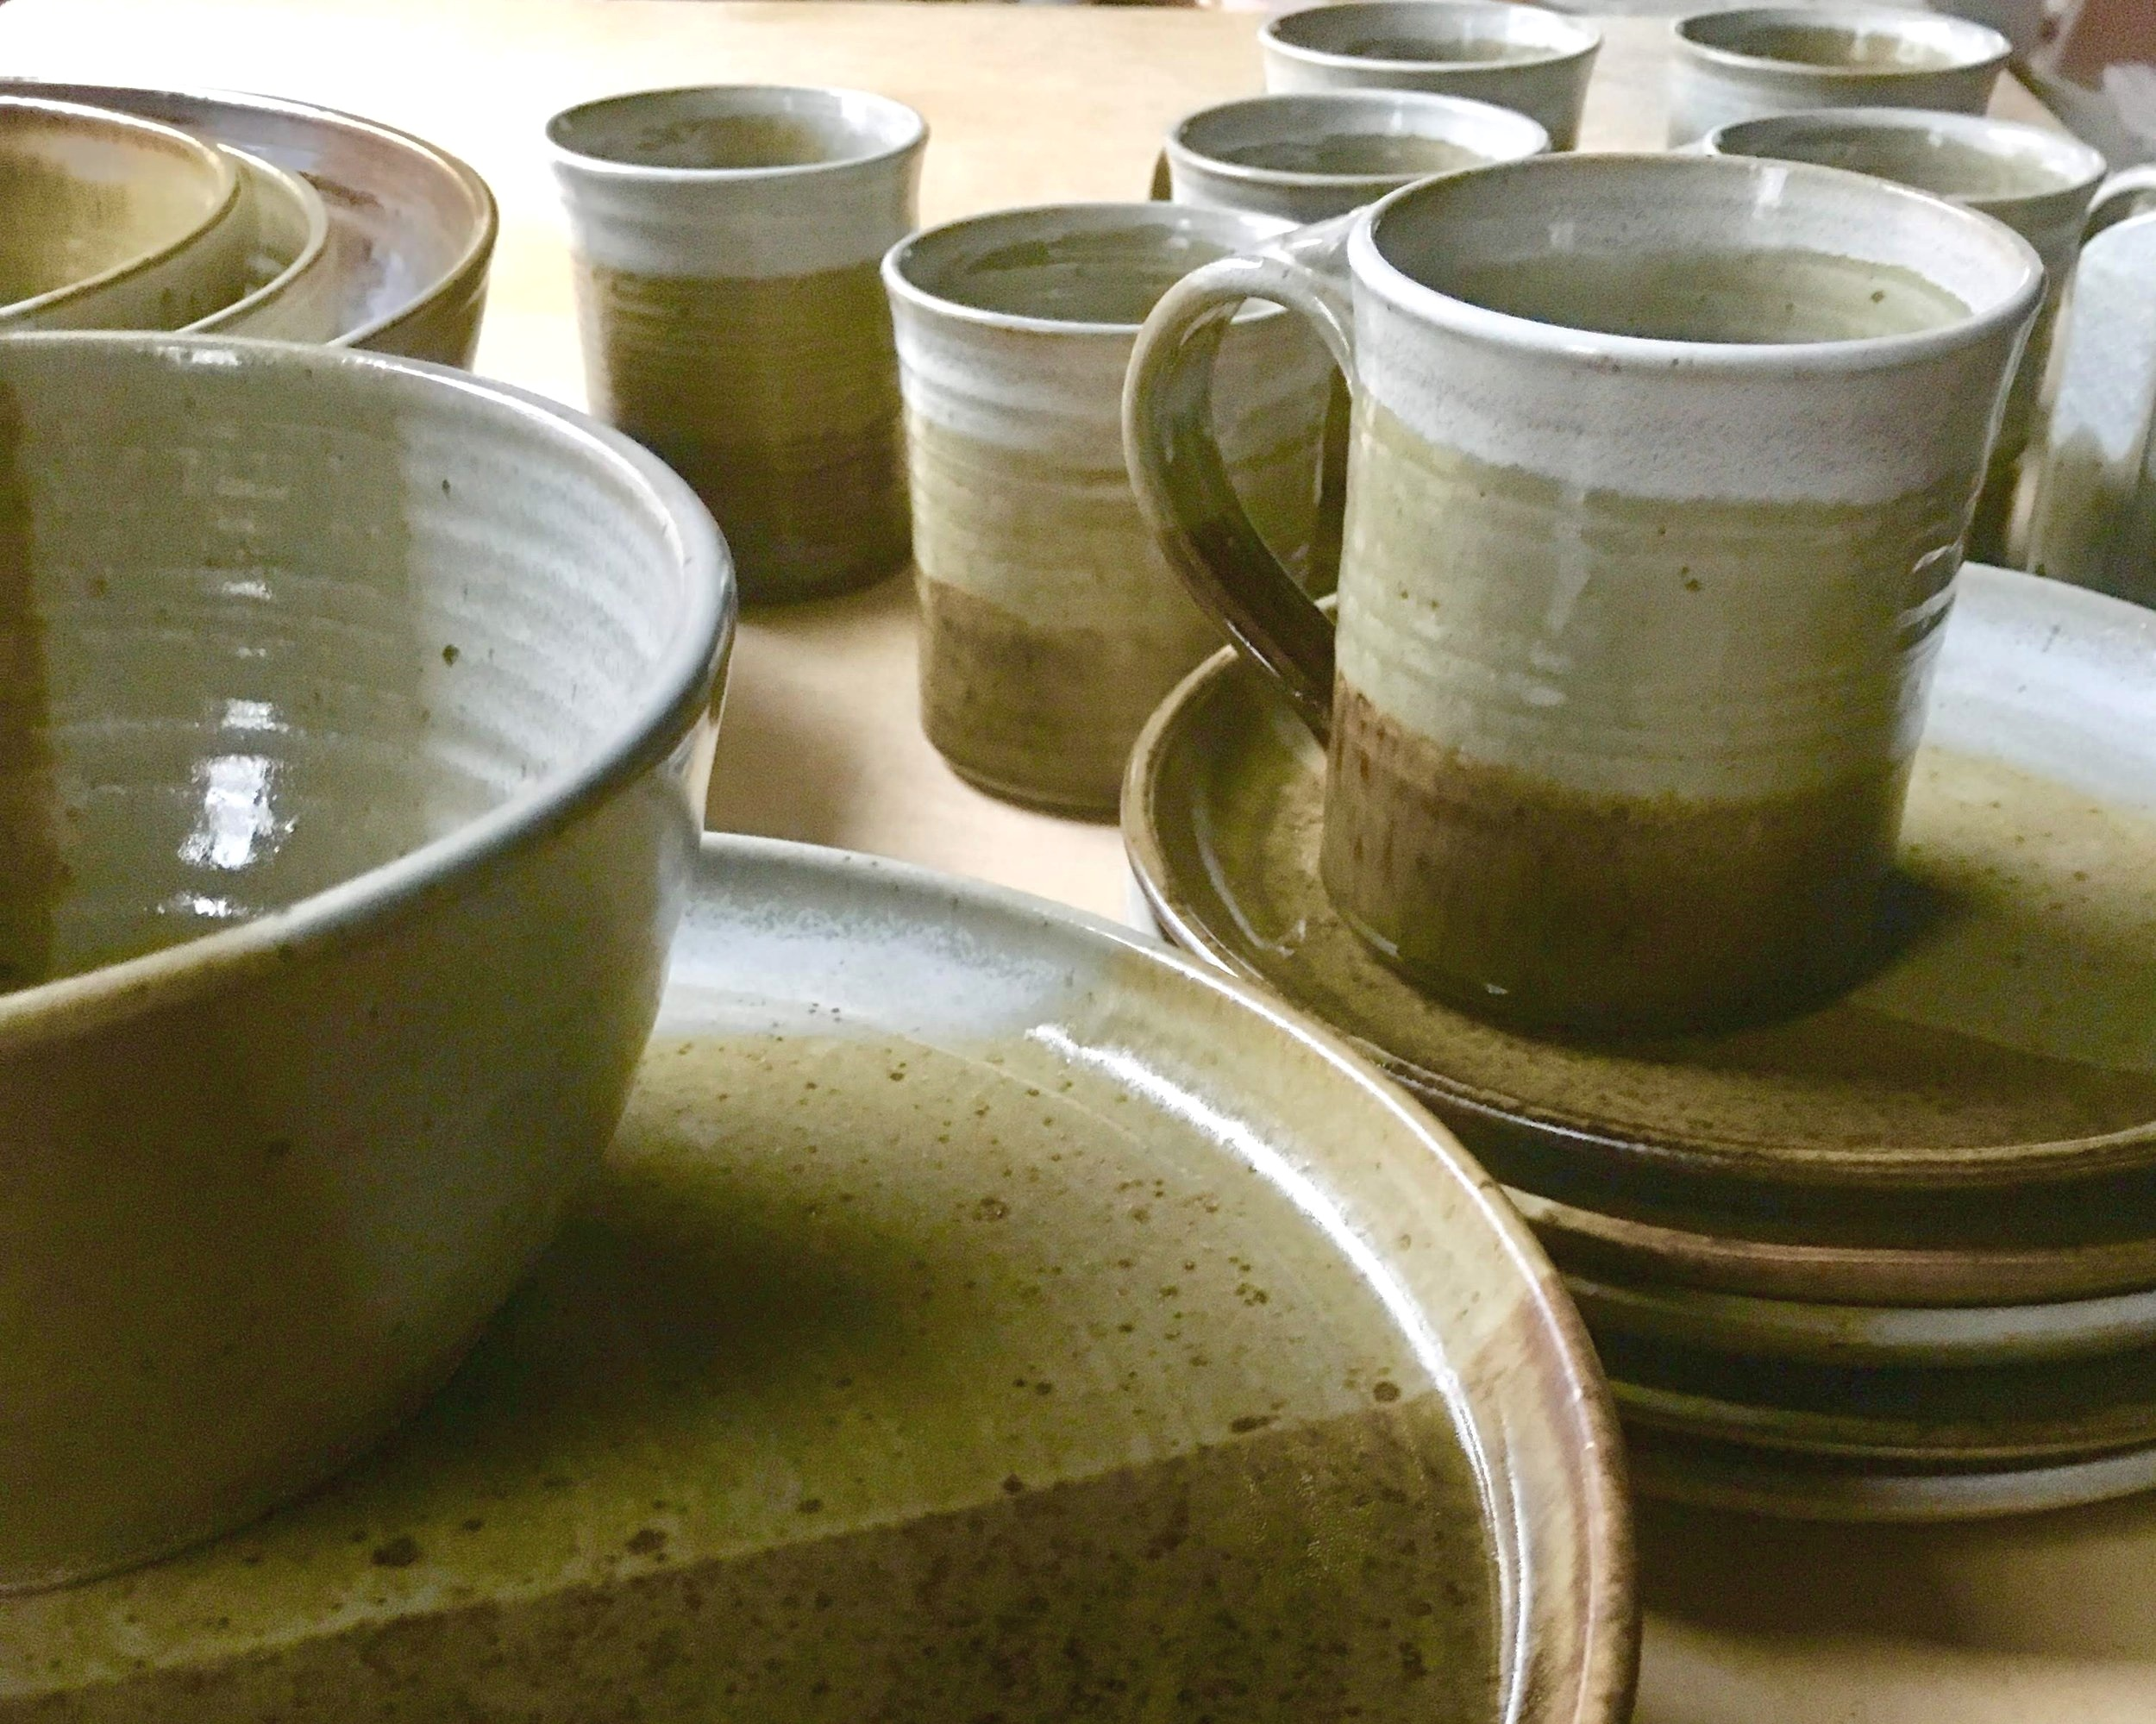 PLACE SETTINGS - Starting at $95, a place setting usually includes a dinner plate, a lunch plate, a bowl, and a mug. Orders can be customized based on your preference of style for each item.